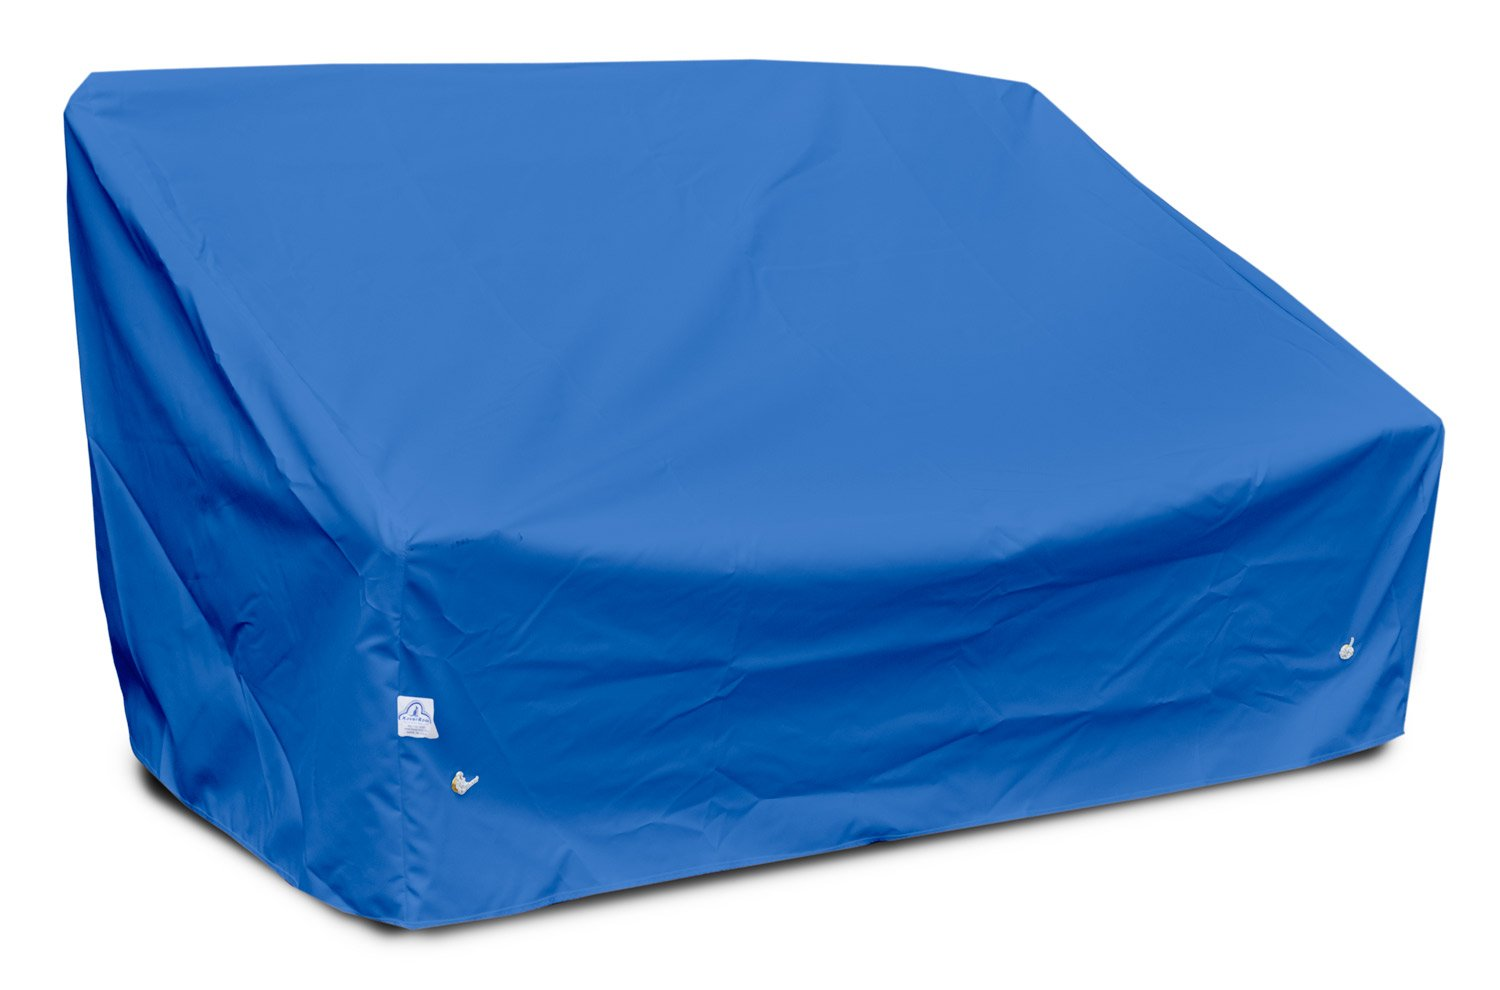 KoverRoos Weathermax 06350 Deep 2-Seat Sofa Cover, 58-Inch Width by 35-Inch Diameter by 32-Inch Height, Pacific Blue